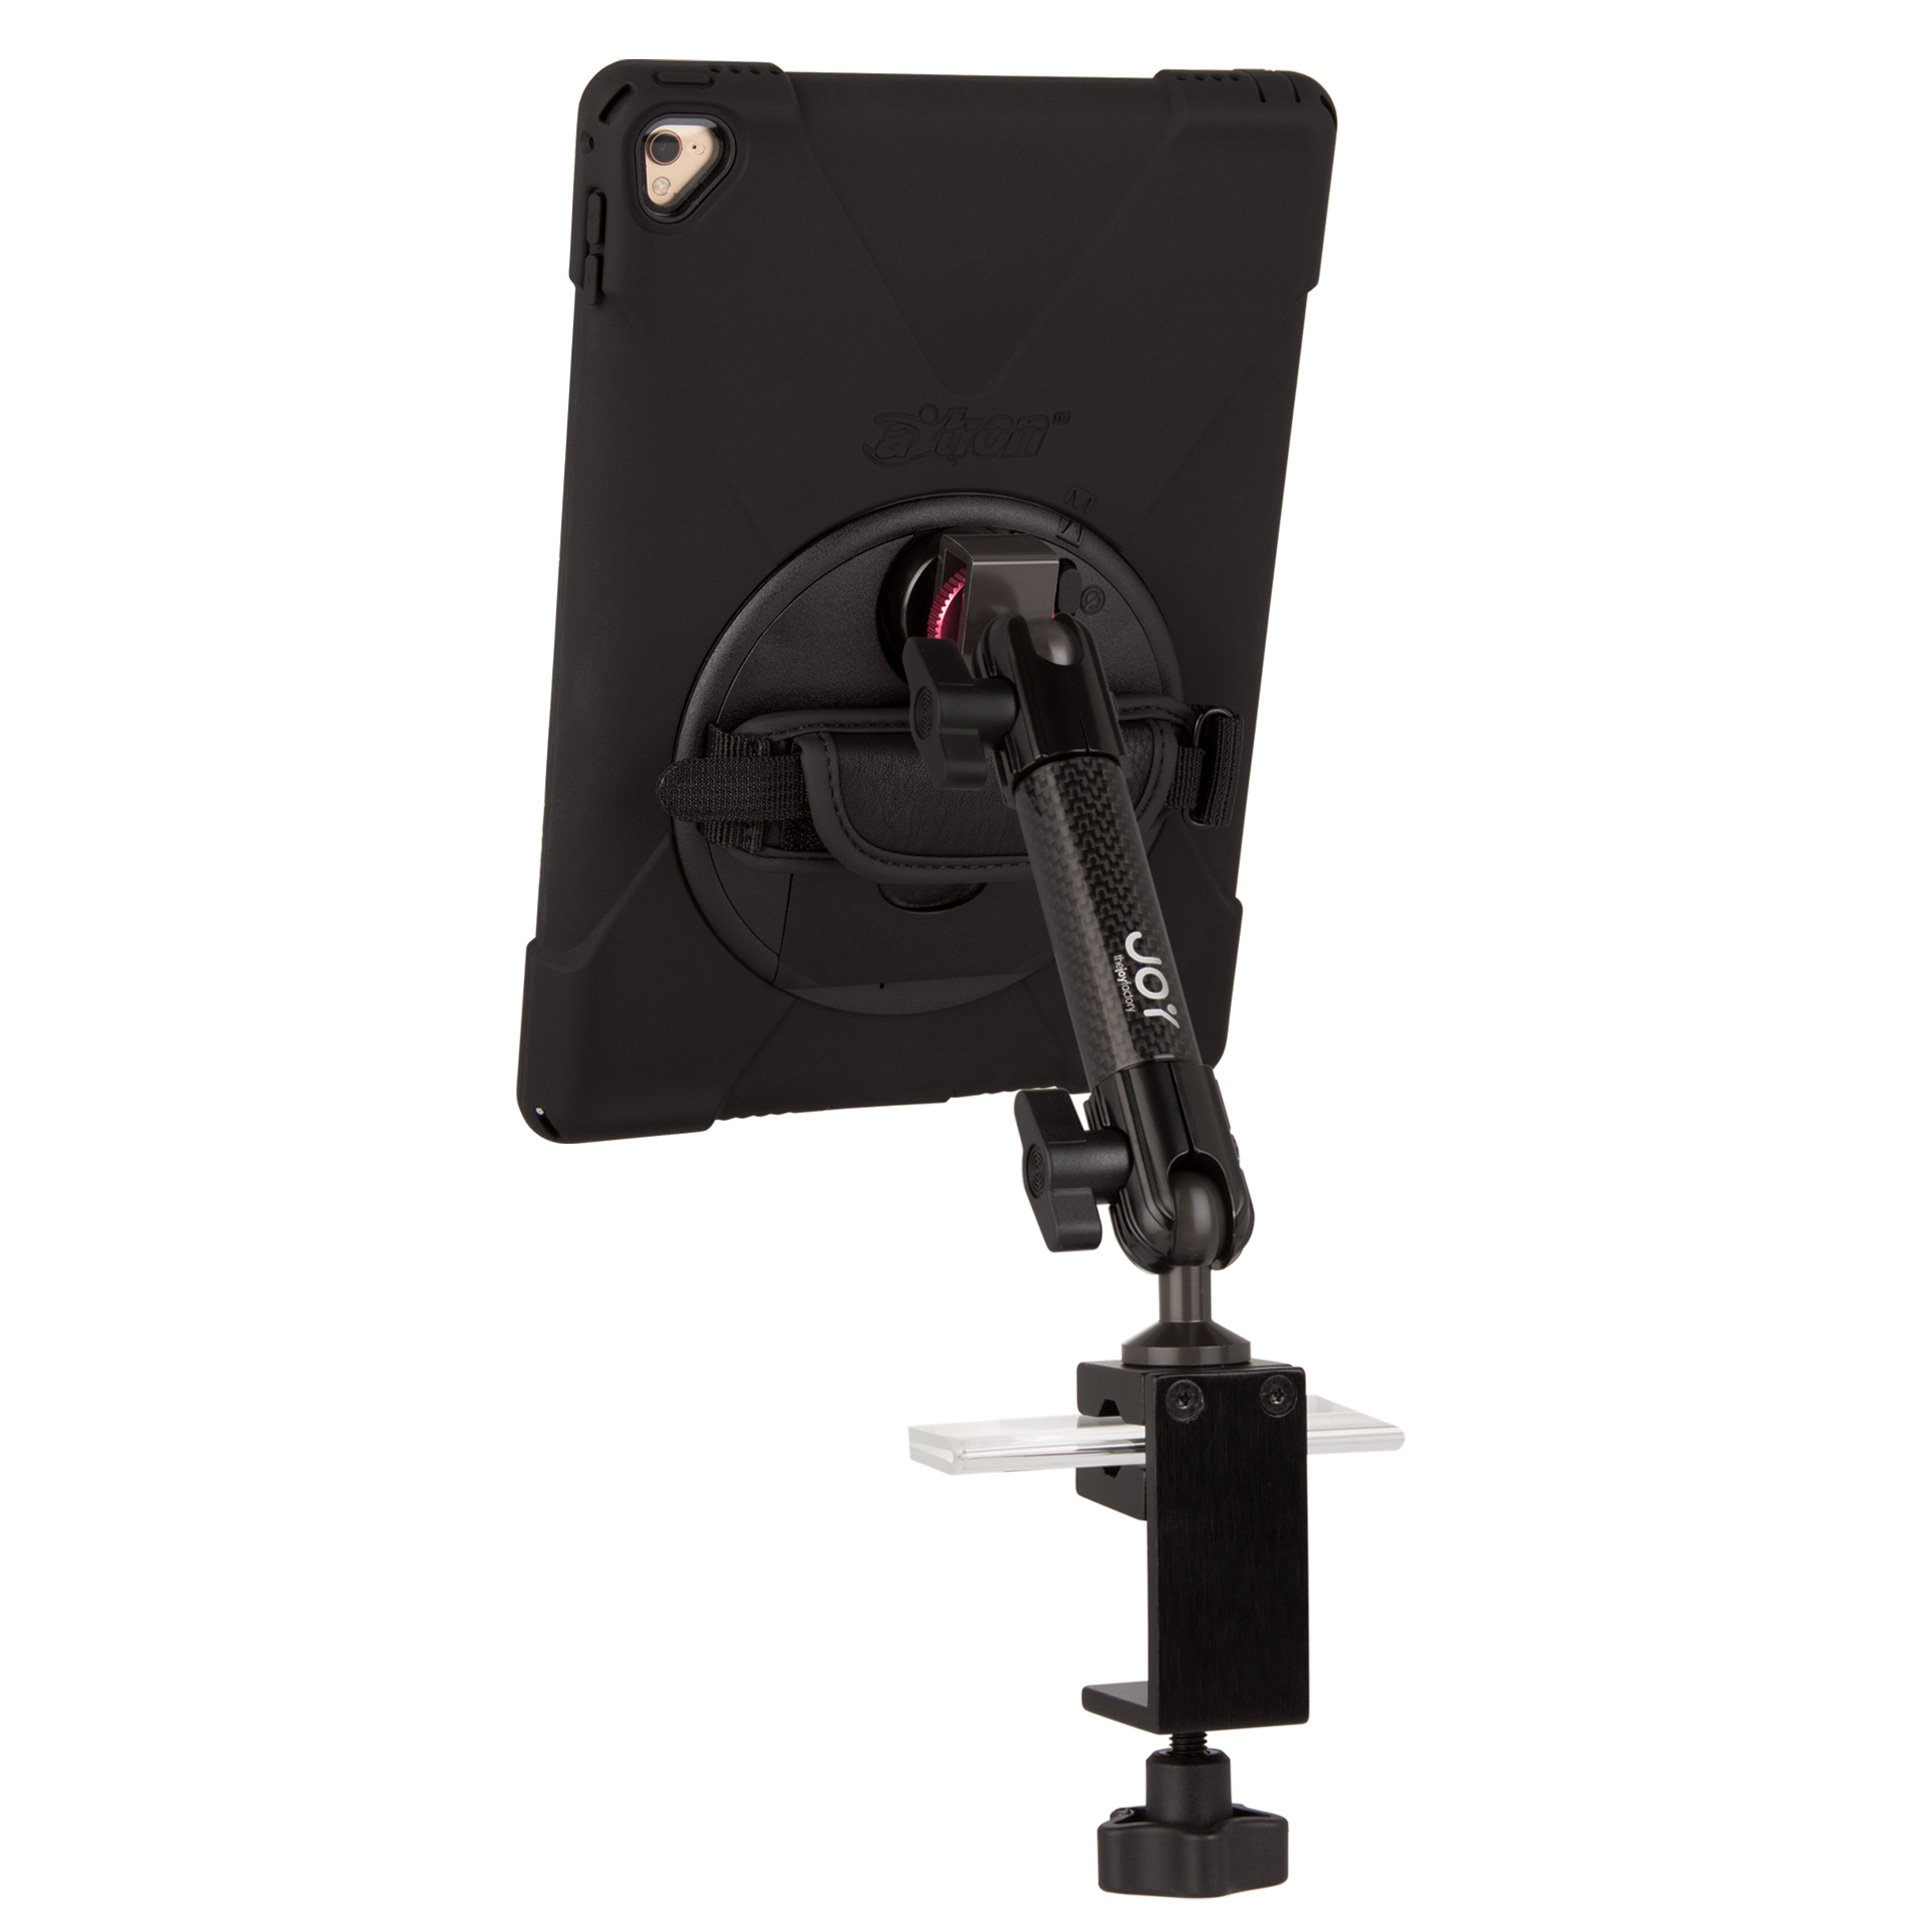 The Joy Factory MagConnect Carbon Fiber C-Clamp Mount with aXtion Bold MP Water-Resistant Rugged Shockproof Case for iPad 9.7 5th Gen, Built-In Screen Protector, Hand Strap, Kickstand (MWA602MP) by The Joy Factory (Image #1)